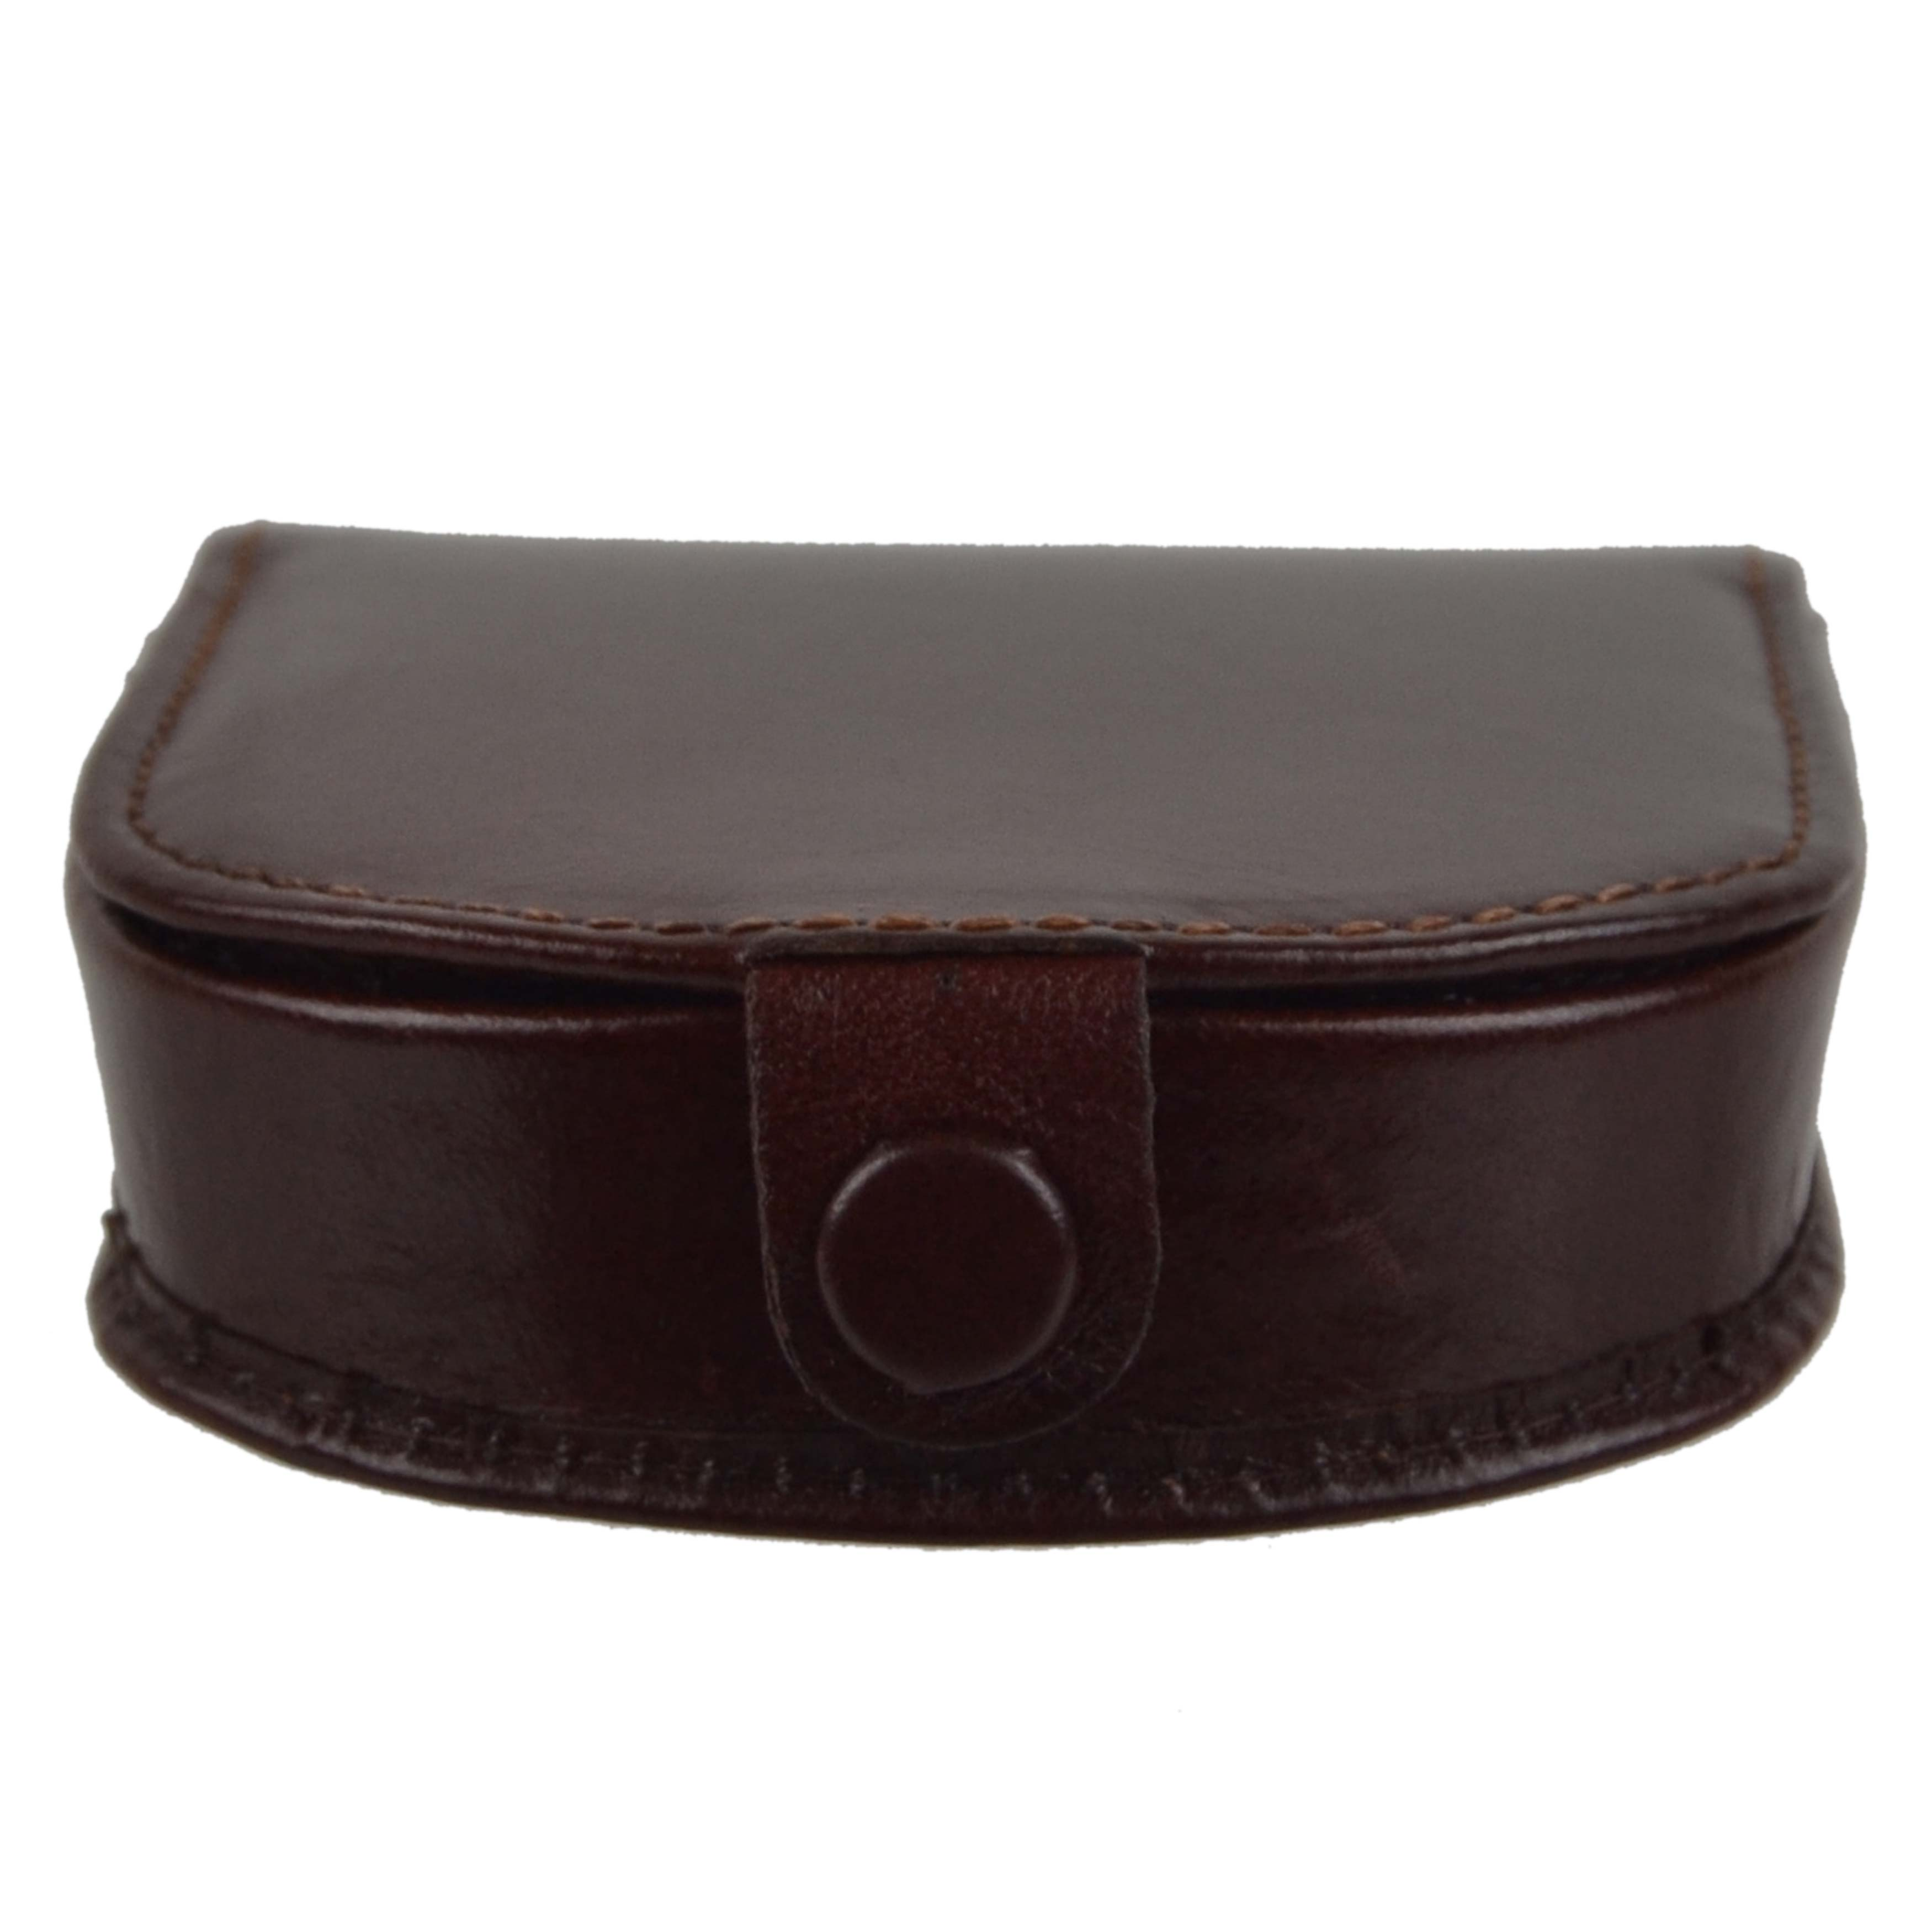 thumbnail 17 - Mens-Classic-Leather-Tabbed-Coin-Tray-by-Visconti-Monza-Collection-Gift-Boxed